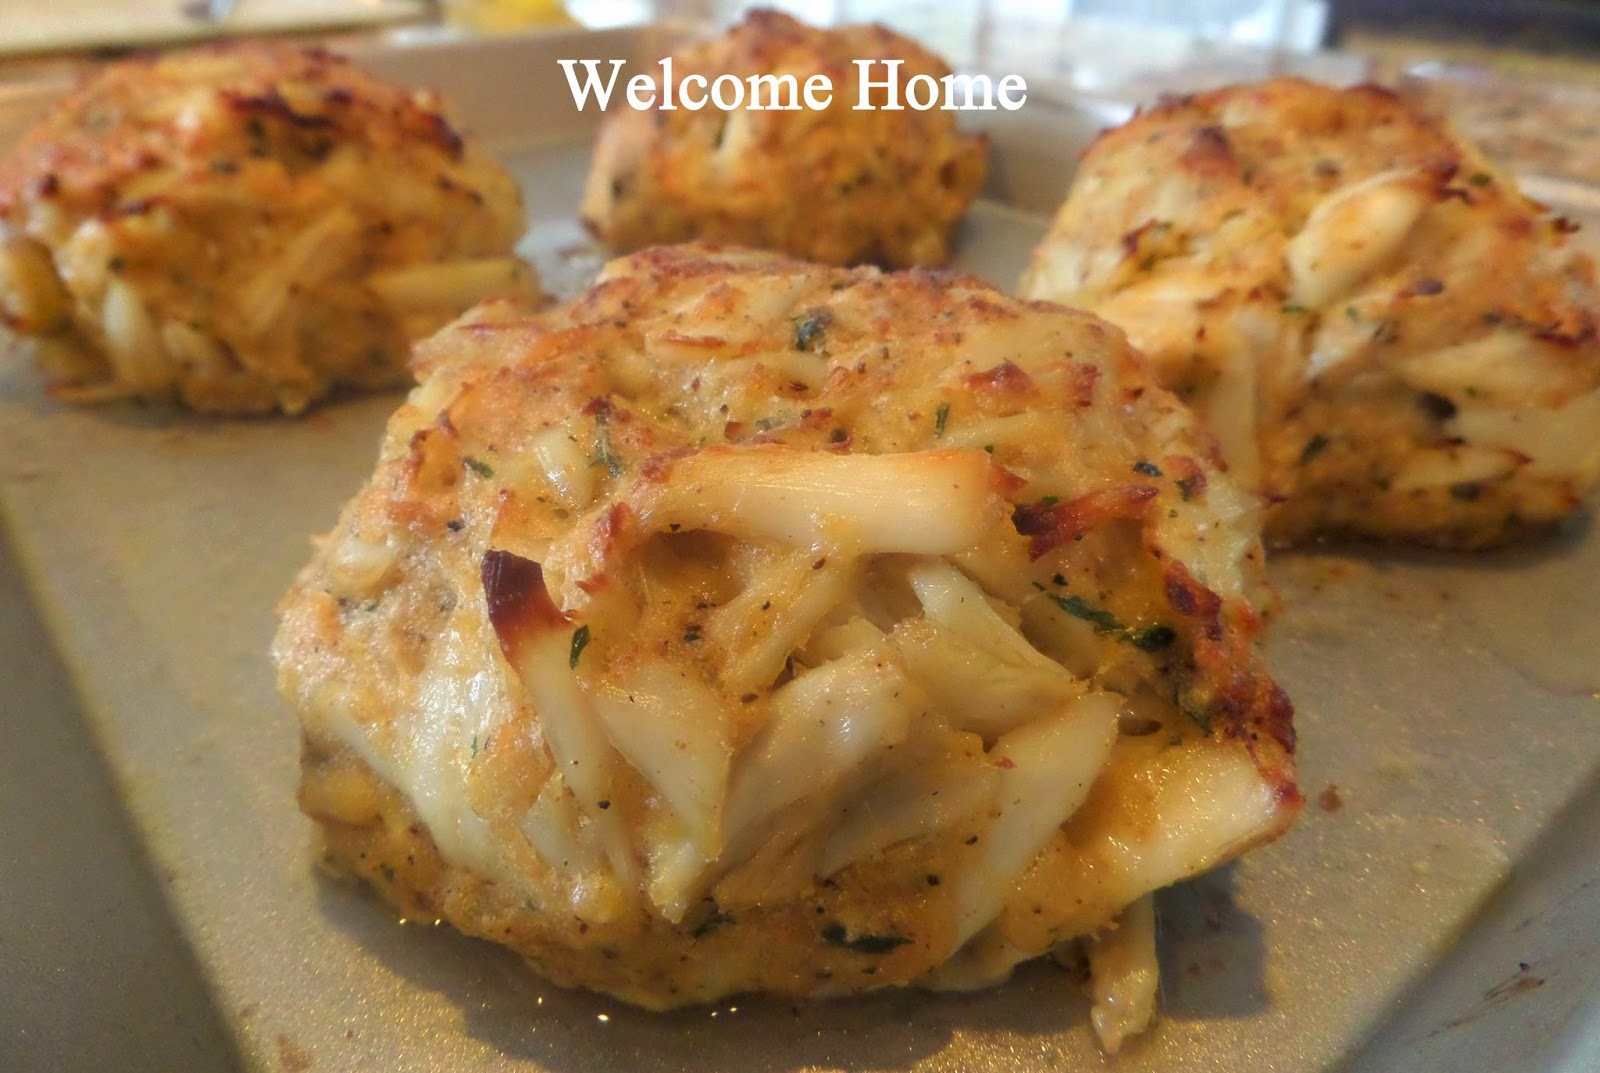 My Maryland Crab Cakes